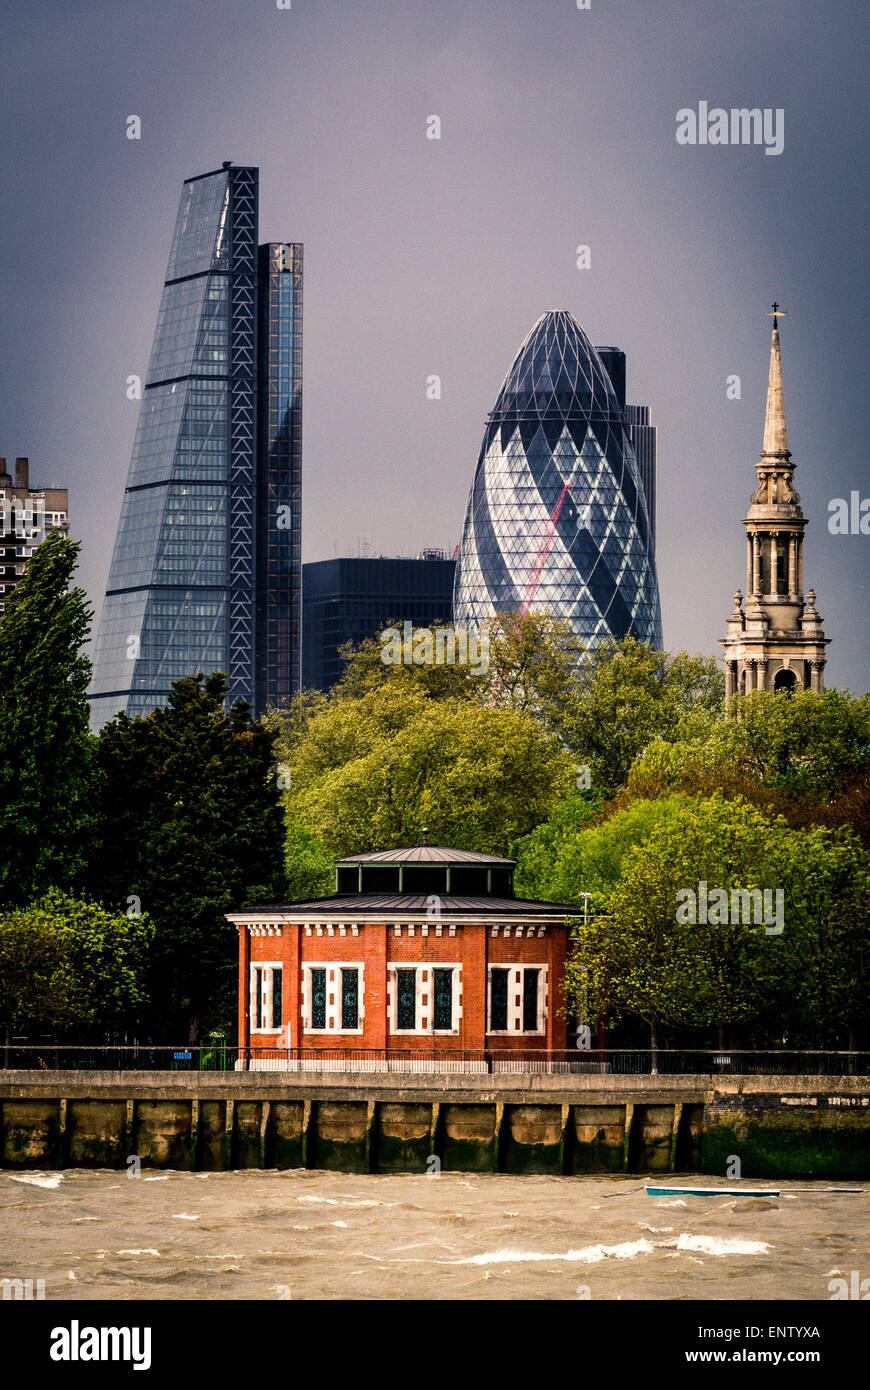 The Gherkin and Cheese Grater buildings from south side of river Thames, Air shaft to Rotherhithe Tunnel, King Edward - Stock Image